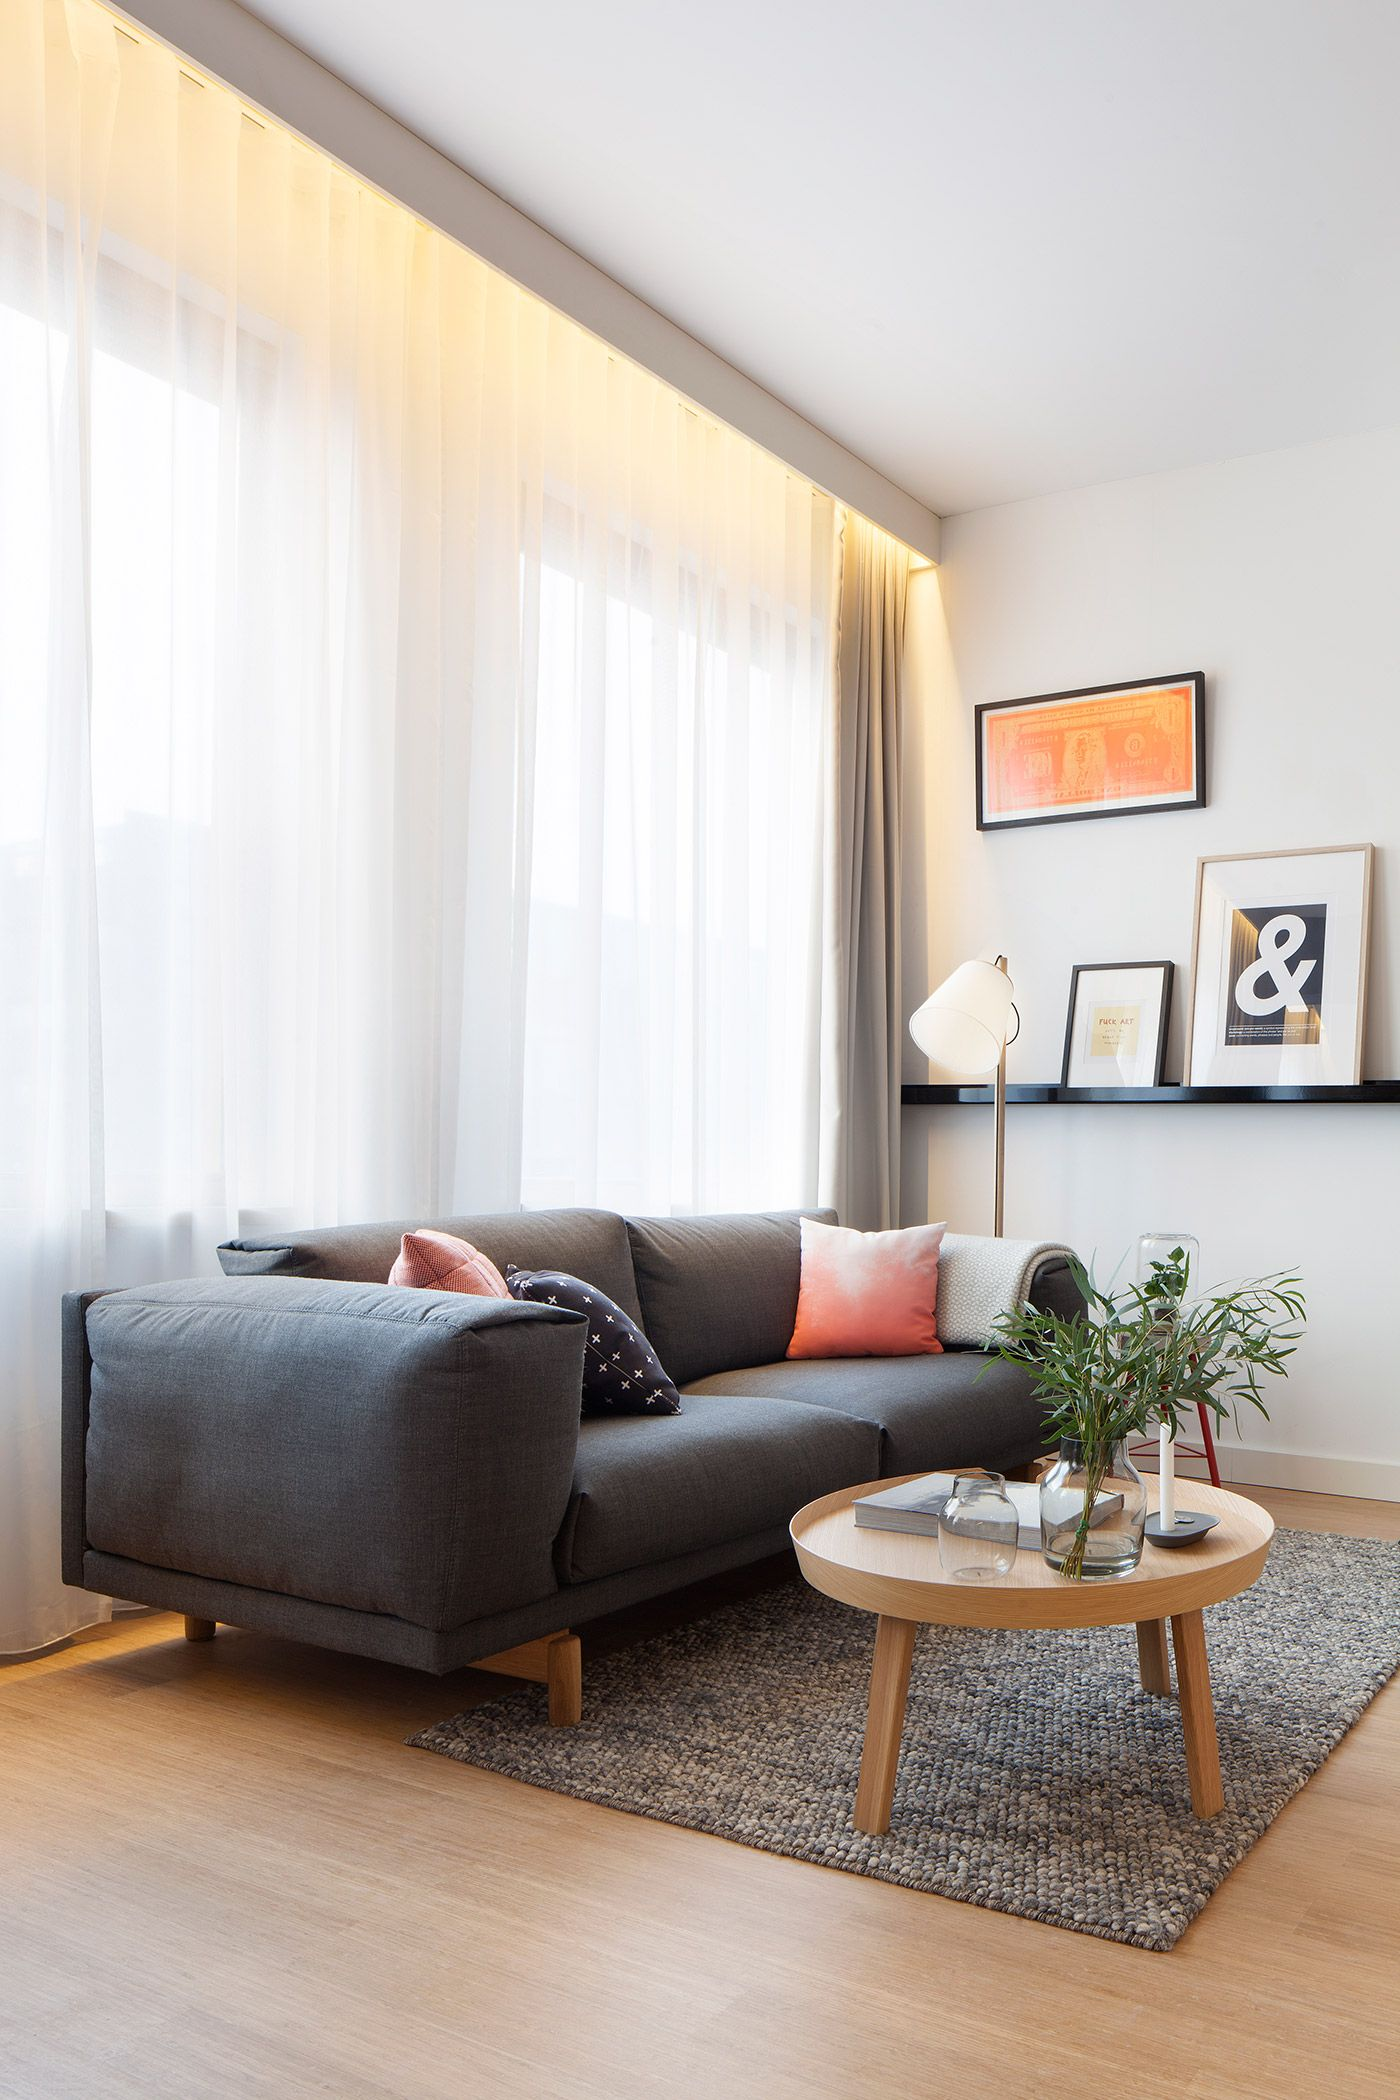 4 Awesome Small Studio Apartments With Lofted Beds   Small living ...